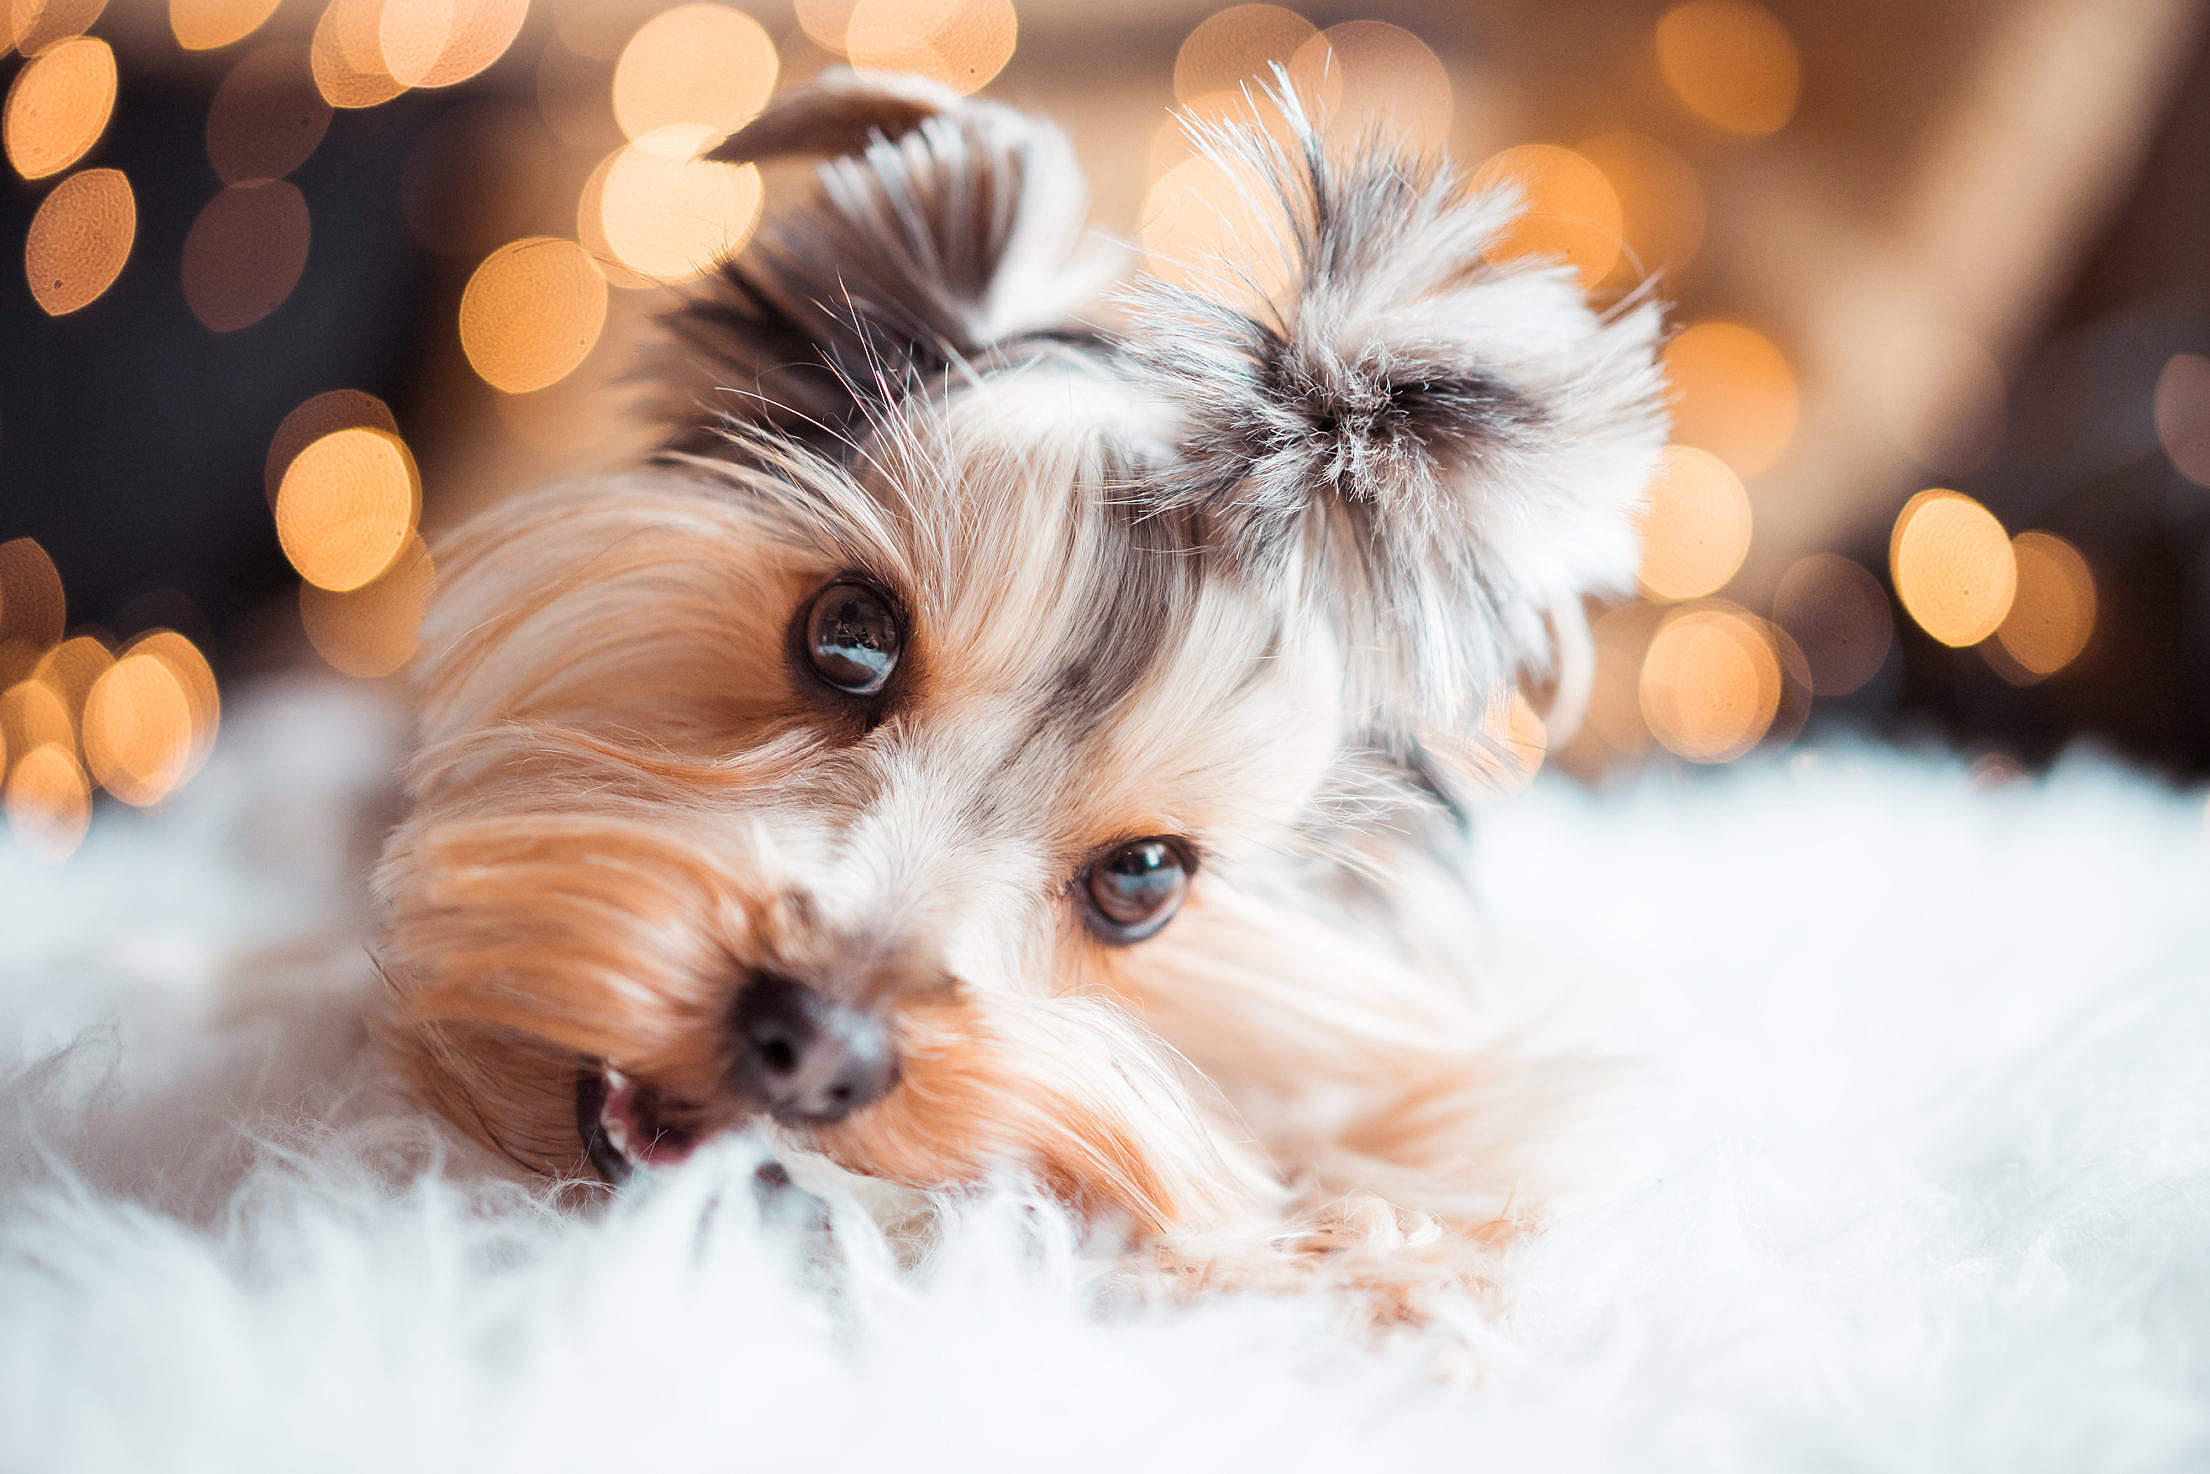 Cute Yorkshire Terrier Eating Mini Dog Snacks on Christmas Free Stock Photo